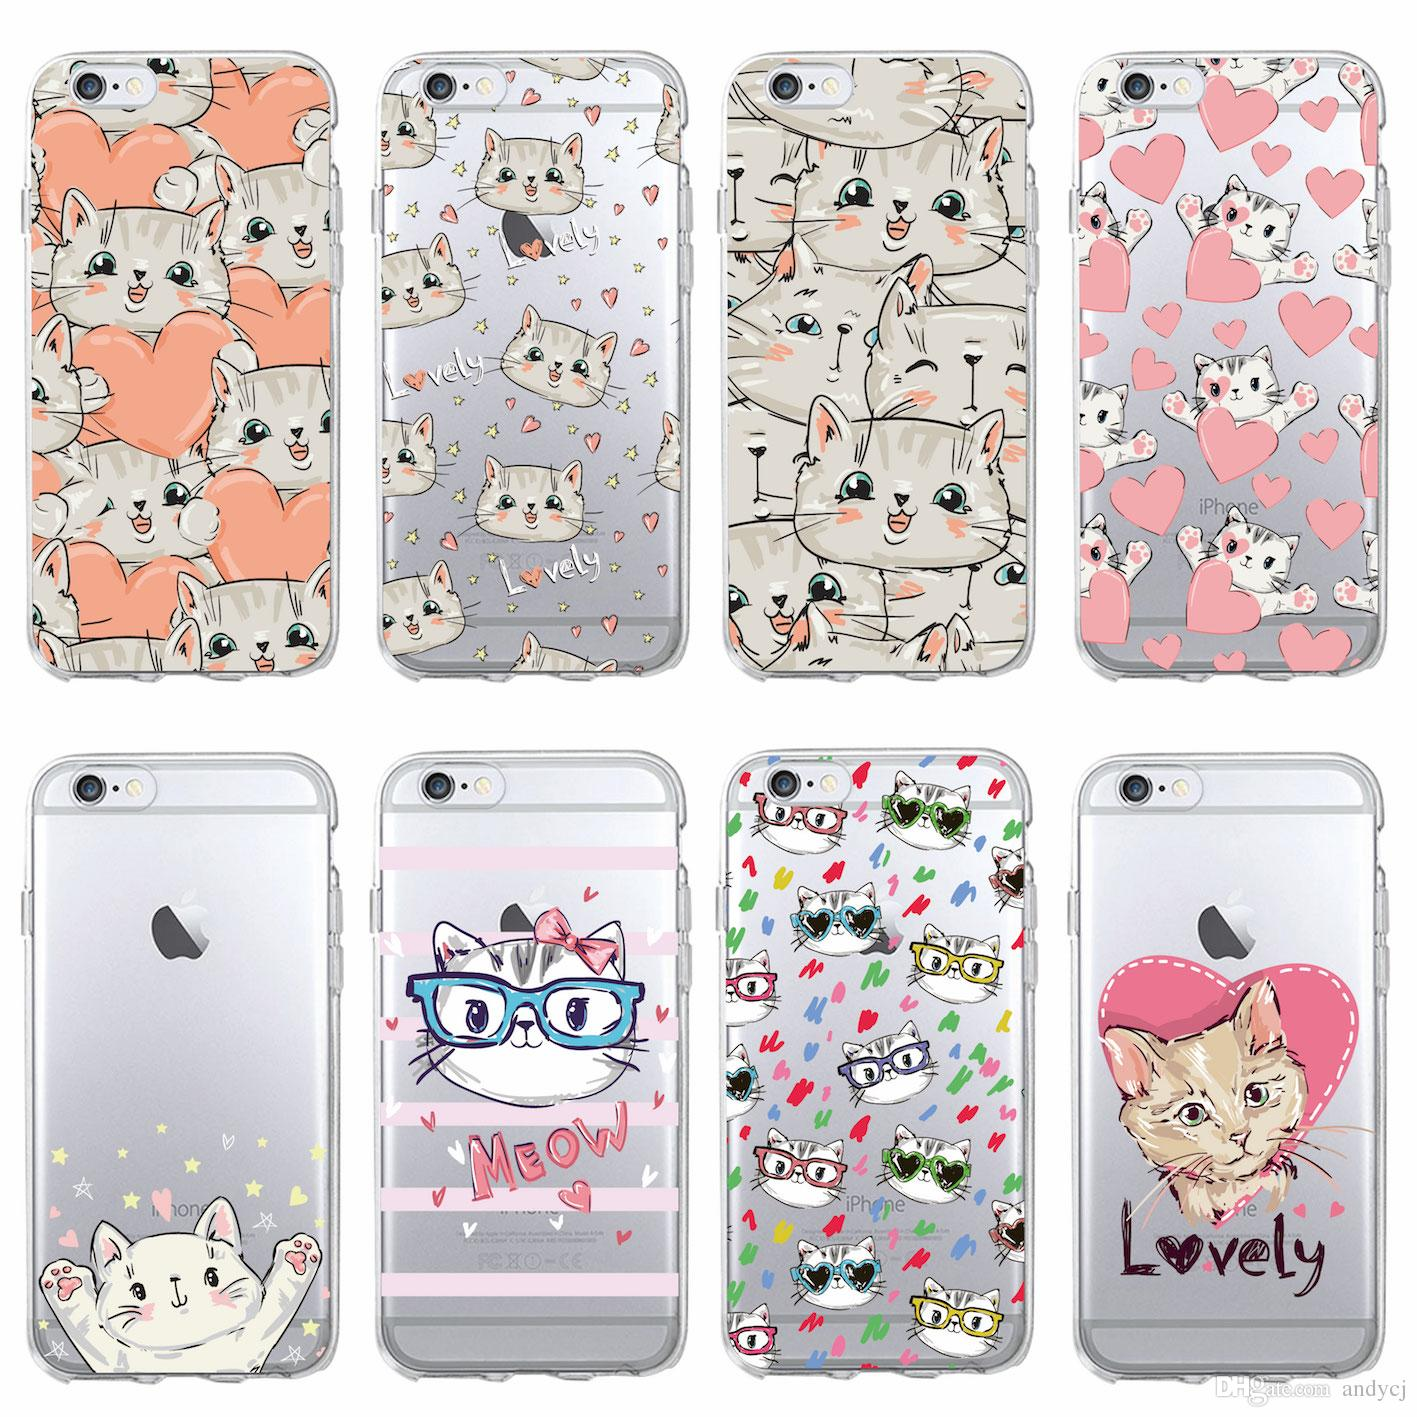 size 40 8514e 27a07 Cute Cartoon Kitty Cat Heart Stripe Lover Meow Phone Case for iPhone 7 7  Plus 6S 6Plus 5 5S 8 8Plus X SAMSUNG